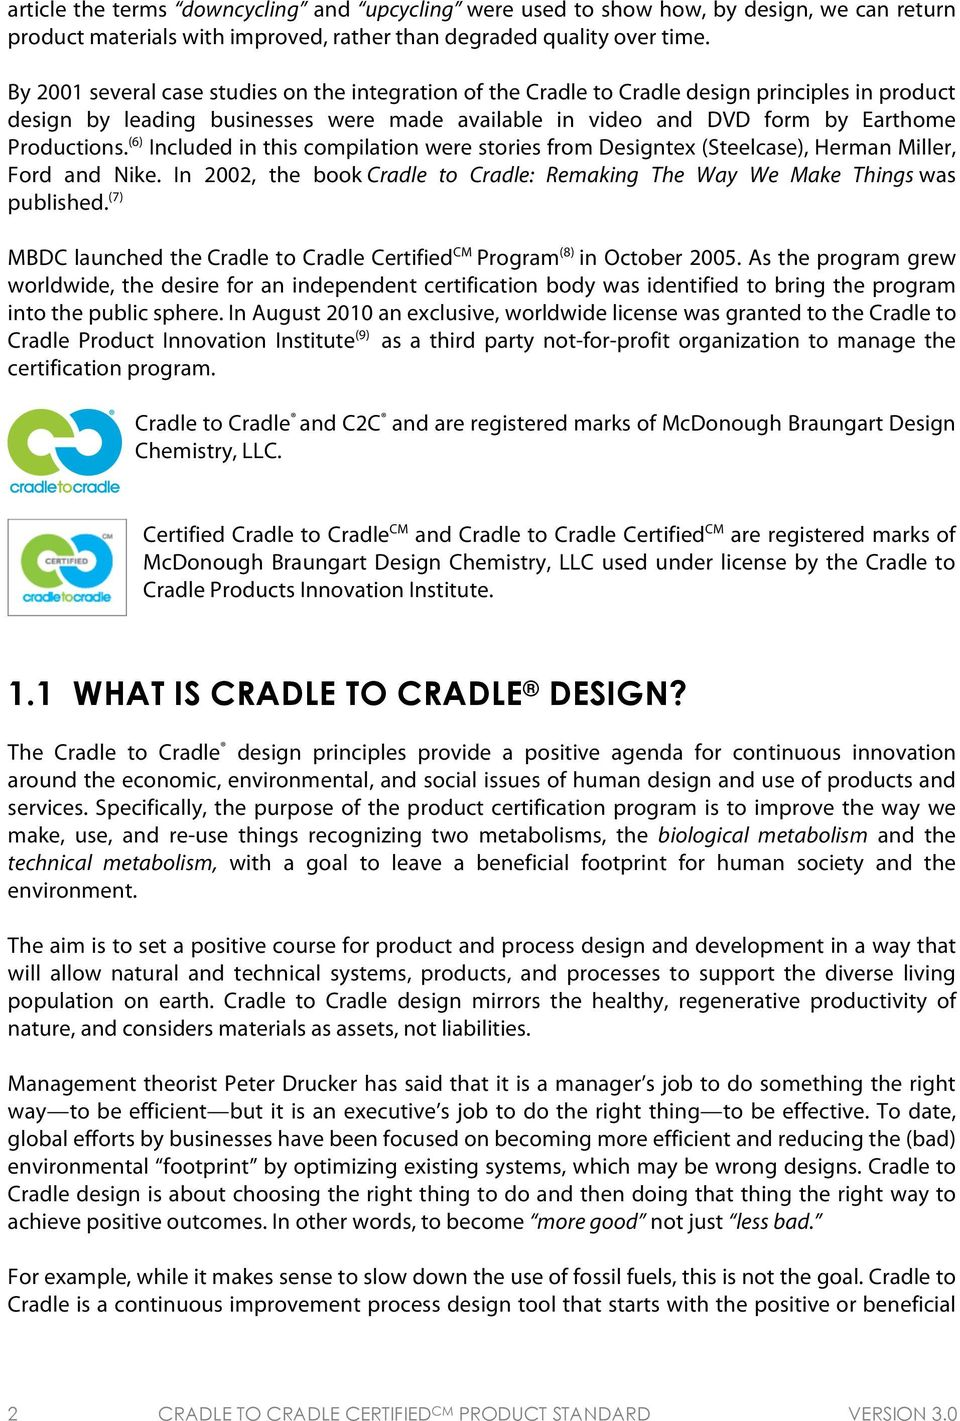 (6) Included in this compilation were stories from Designtex (Steelcase), Herman Miller, Ford and Nike. In 2002, the book Cradle to Cradle: Remaking The Way We Make Things was published.